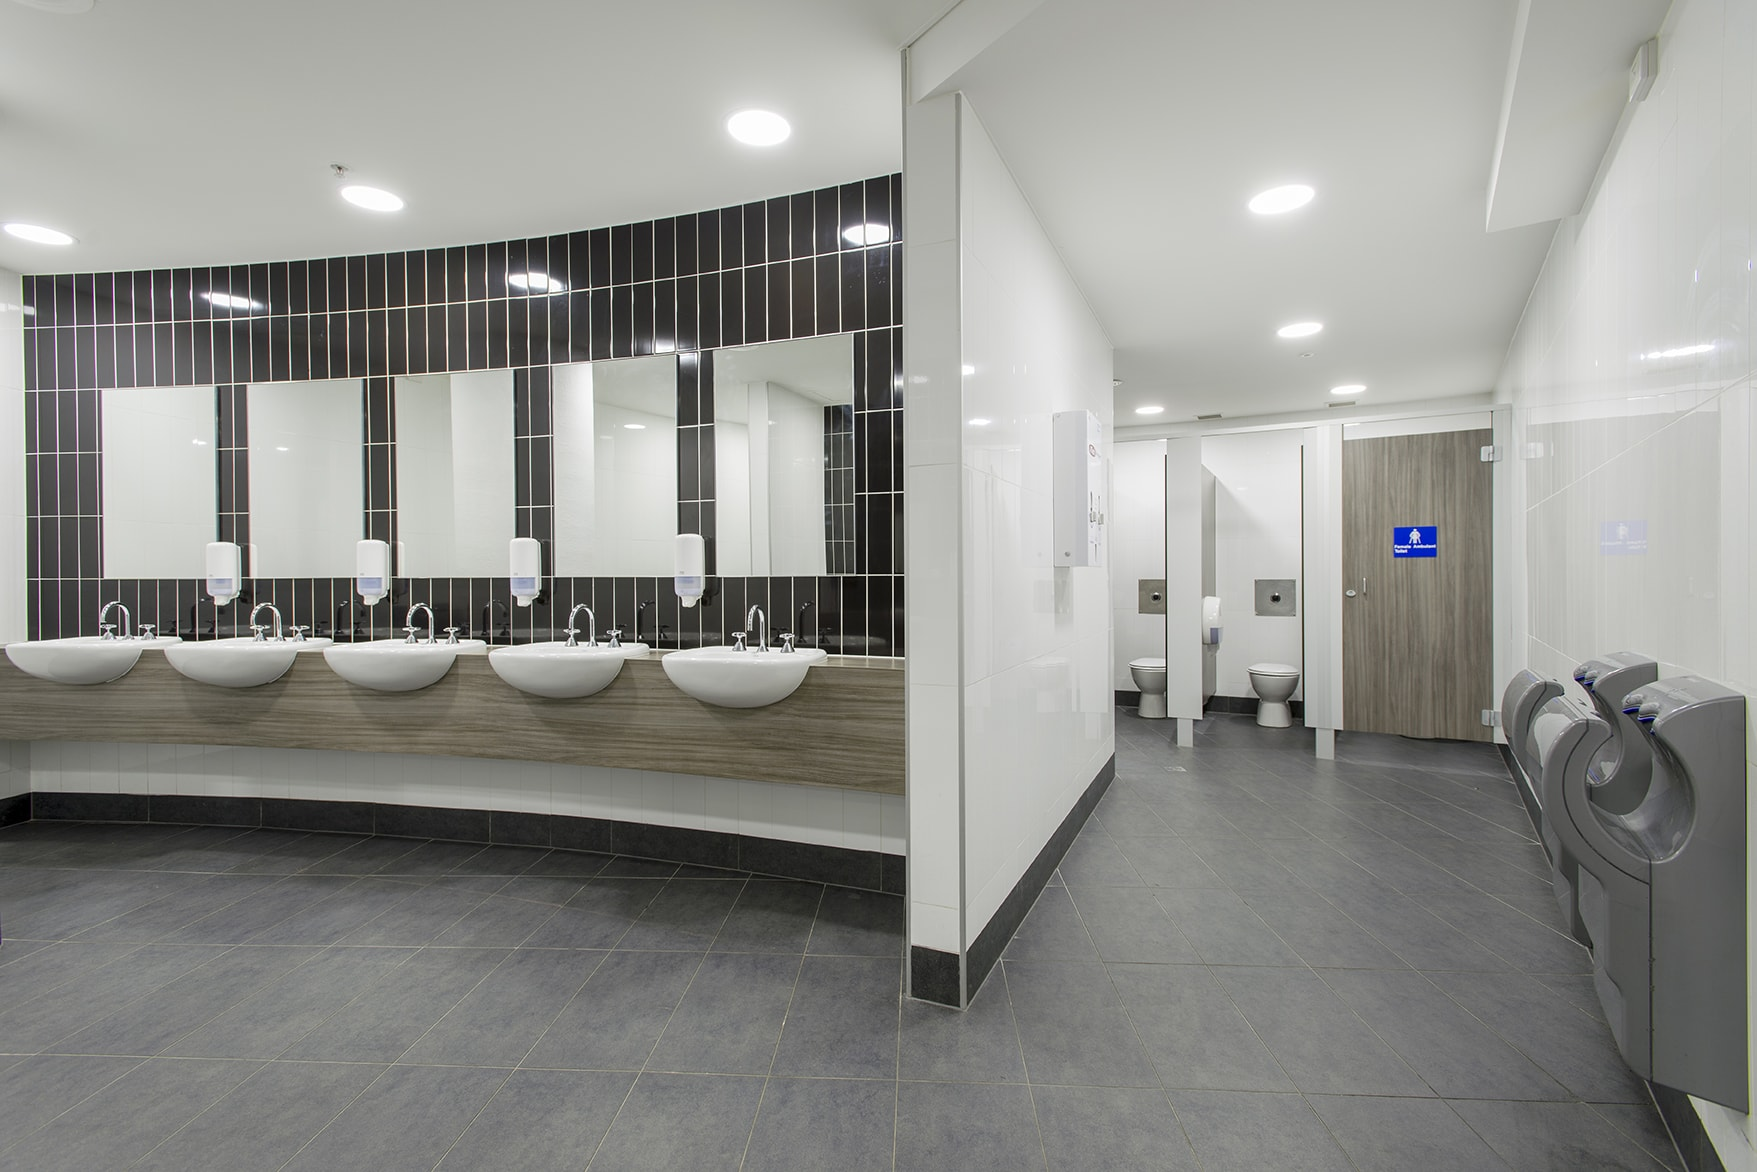 Brown tiles on wall with individual sinks in bathroom at Hisense area of Melbourne Park